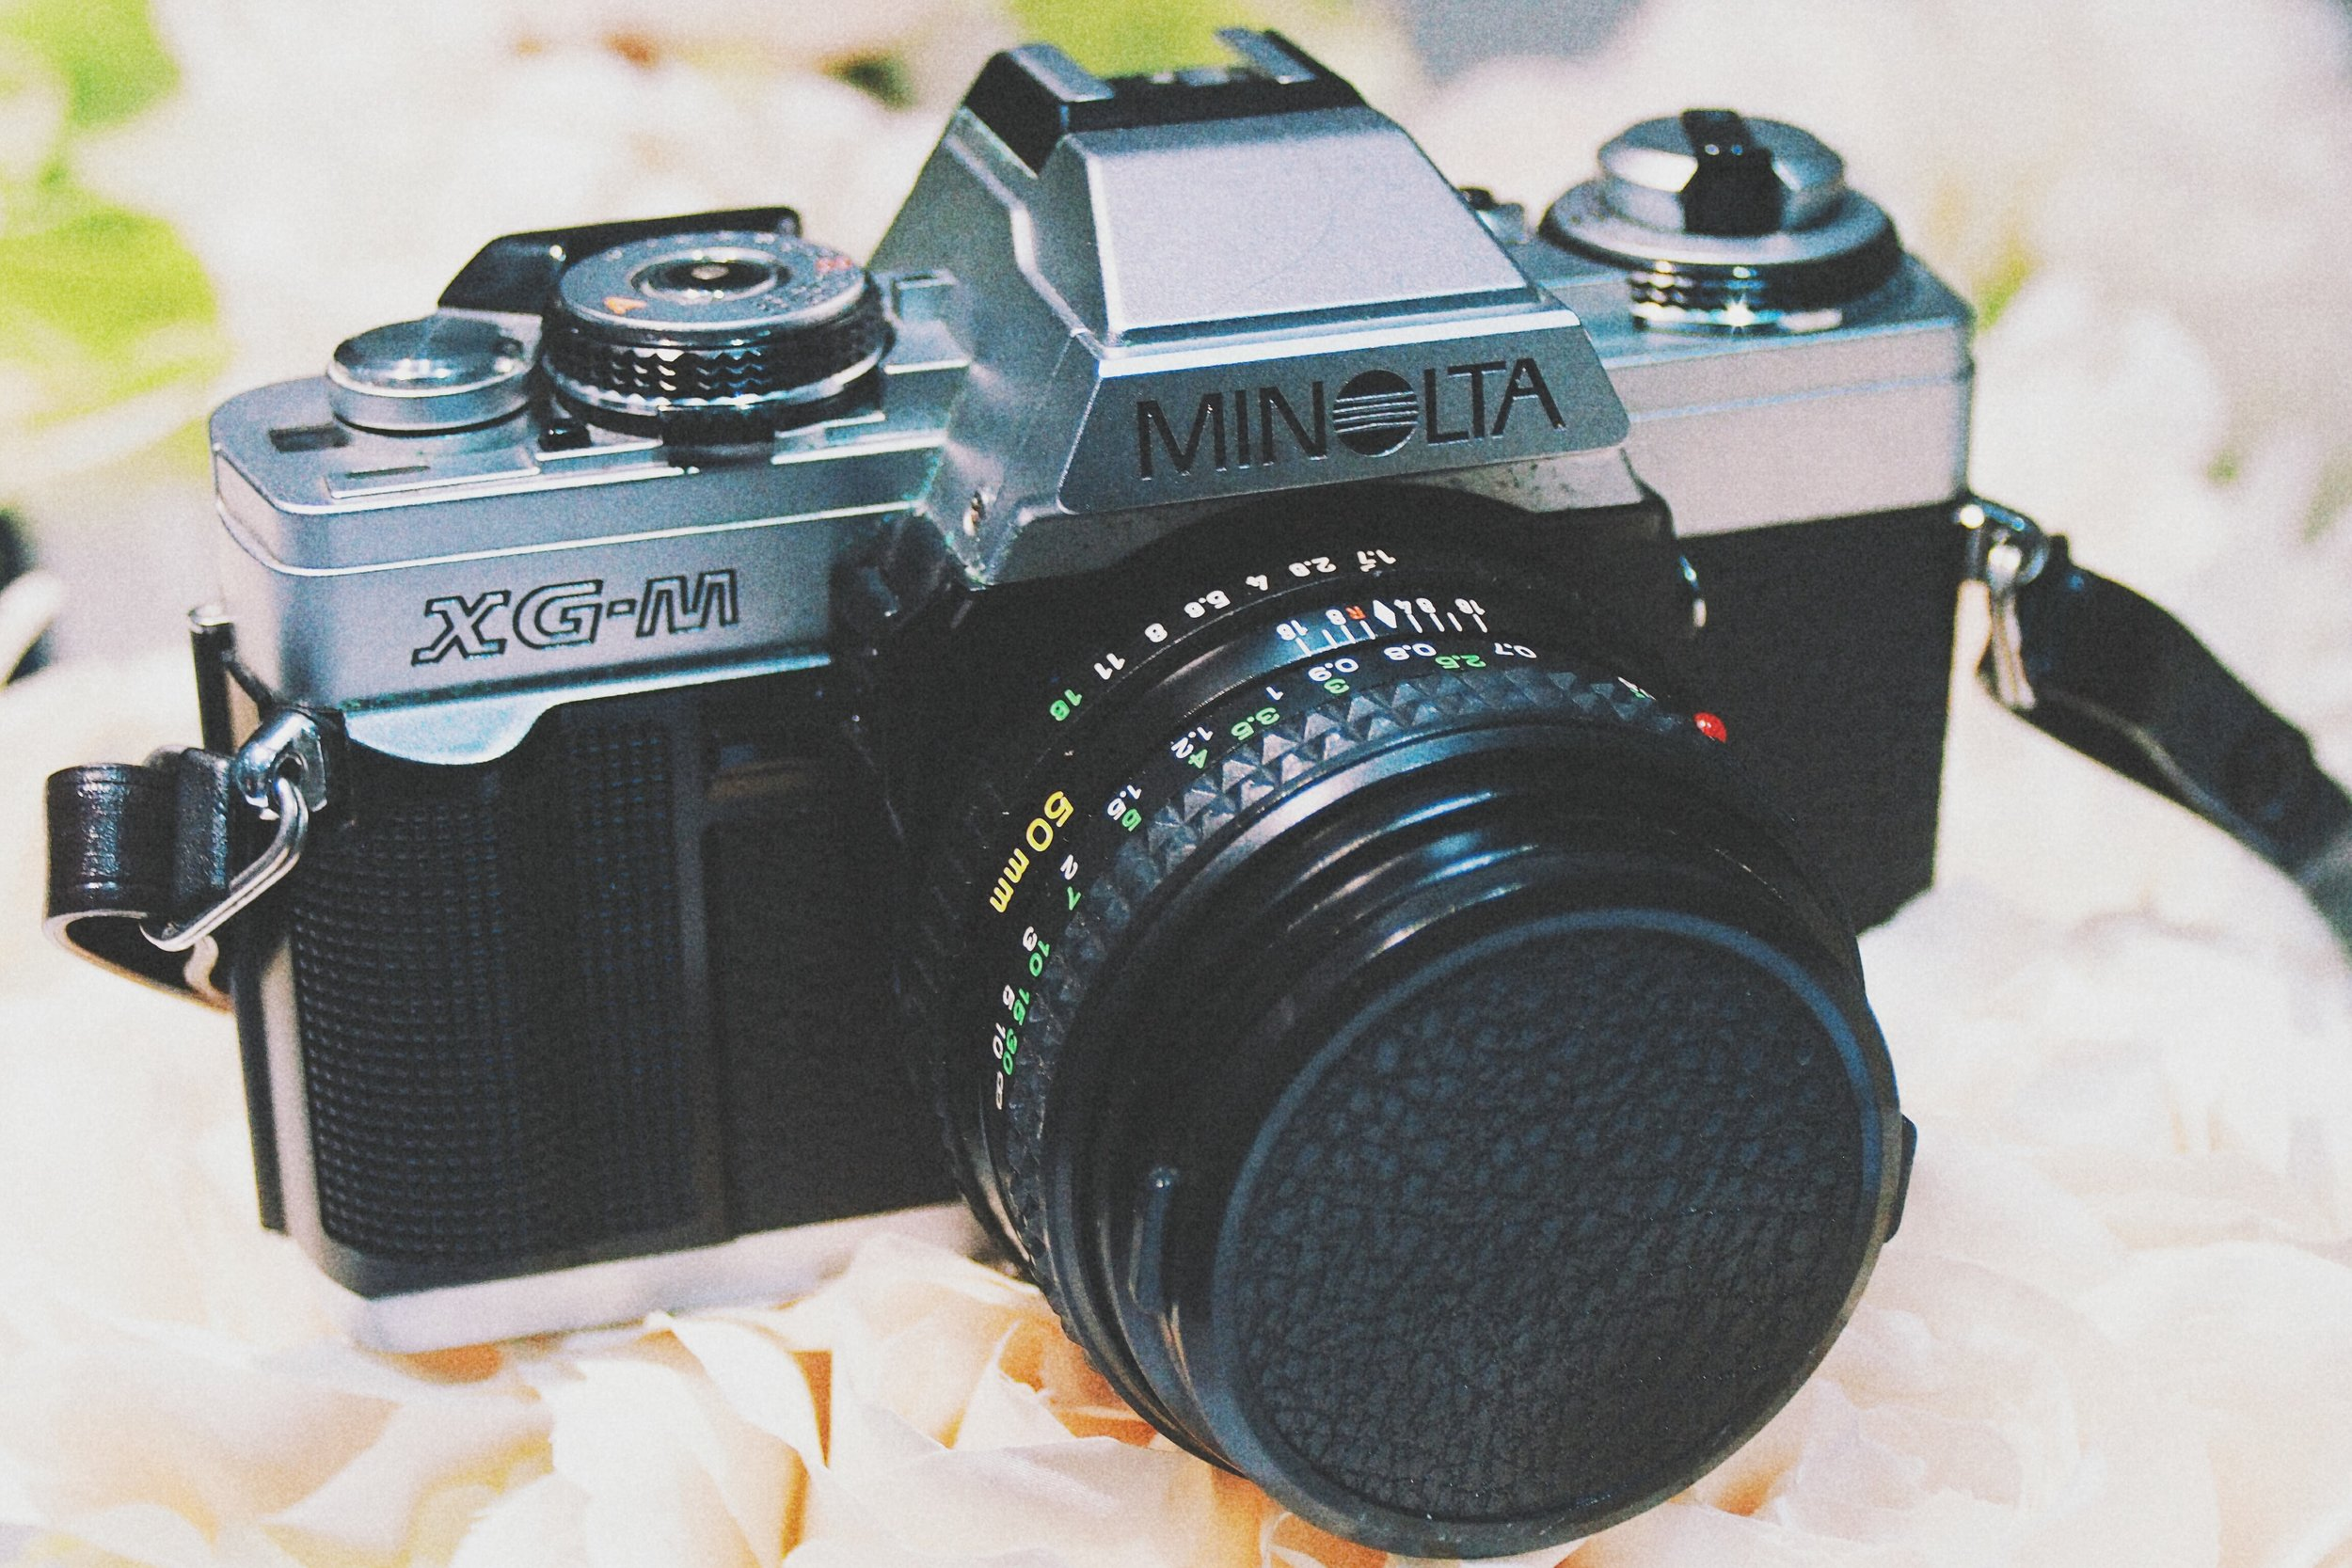 This is my Minolta  XG-M, still works like a treat.